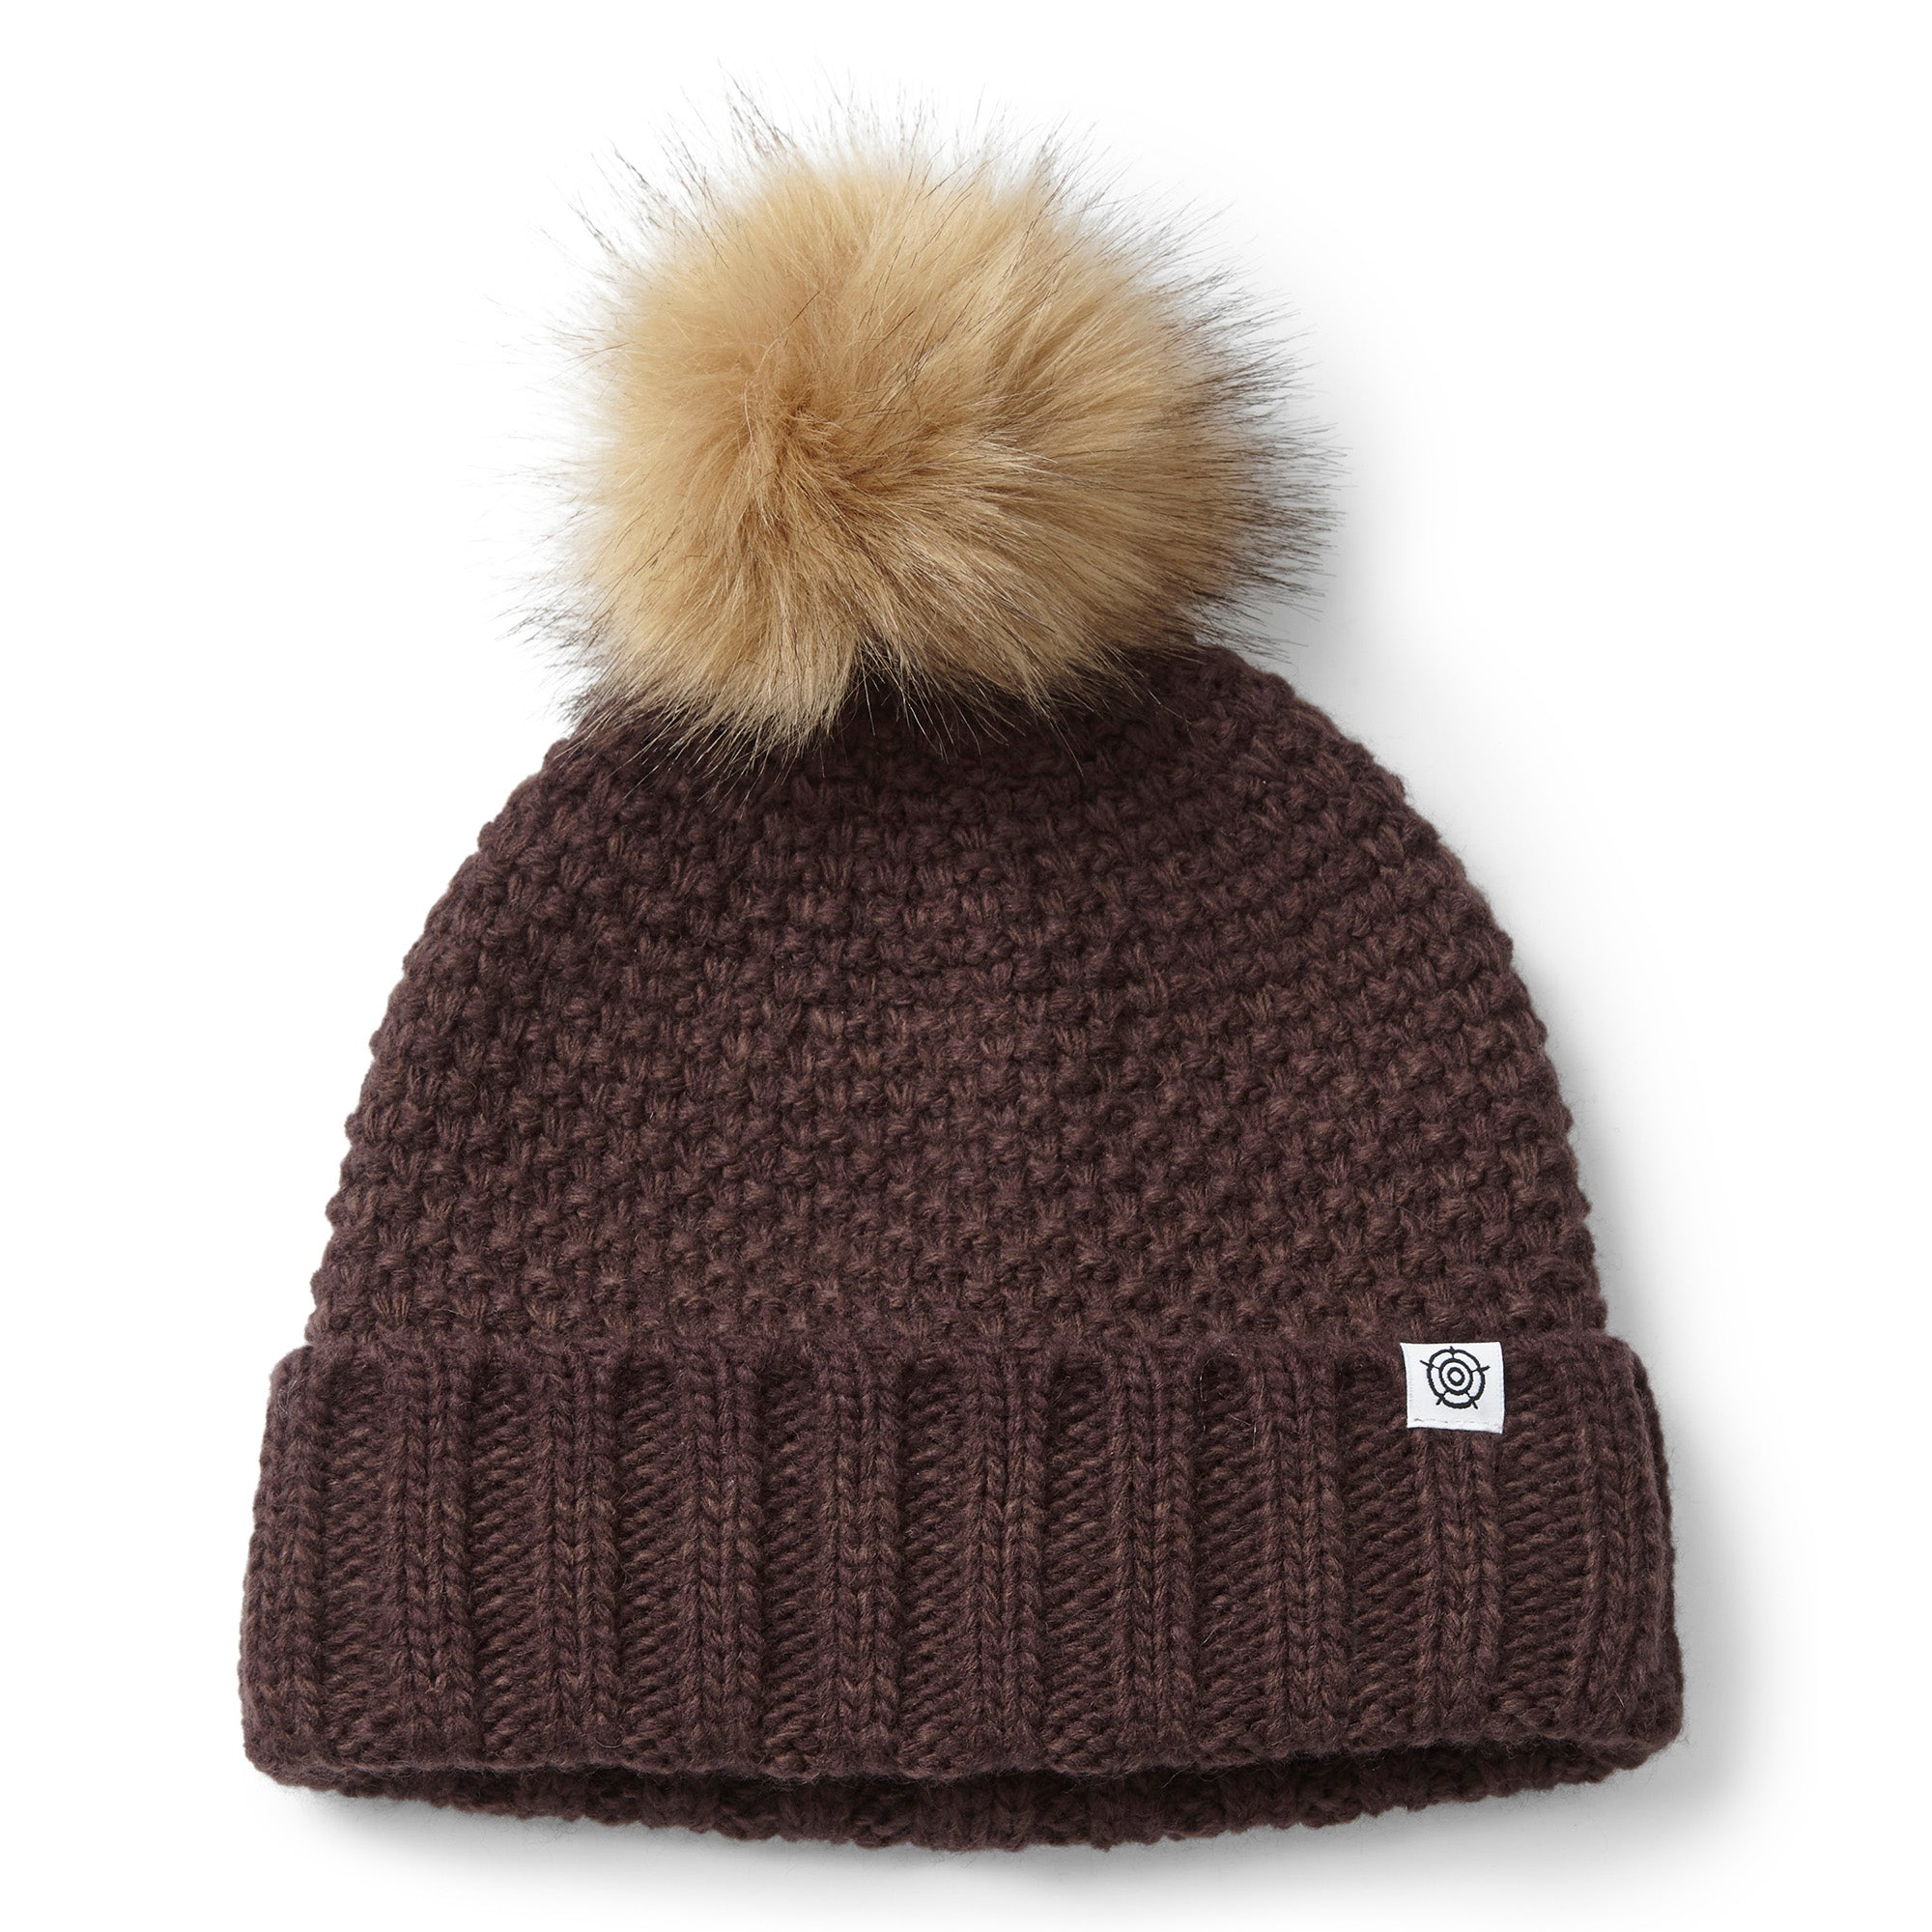 Bristol Knit Beanie Hat - Deep Port Marl